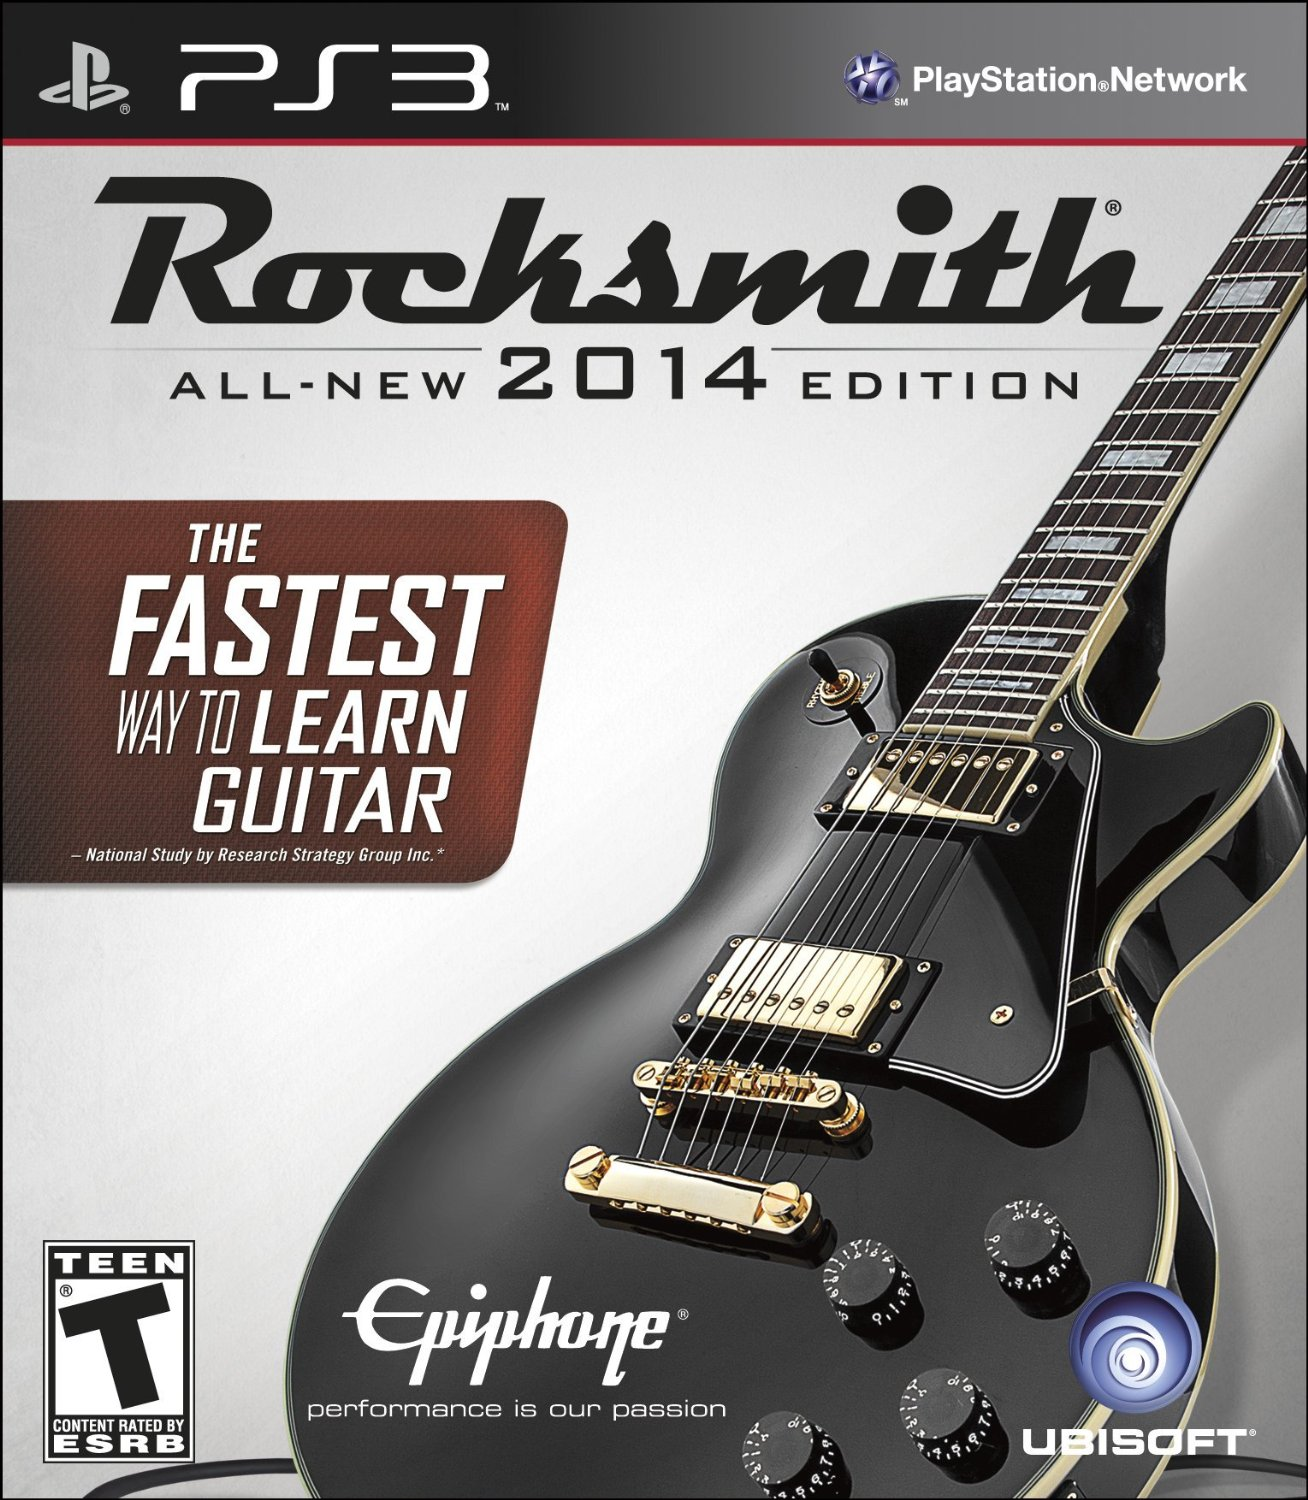 Rocksmith 2014 Game for PS3 or Xbox only $39.99 SHIPPED!